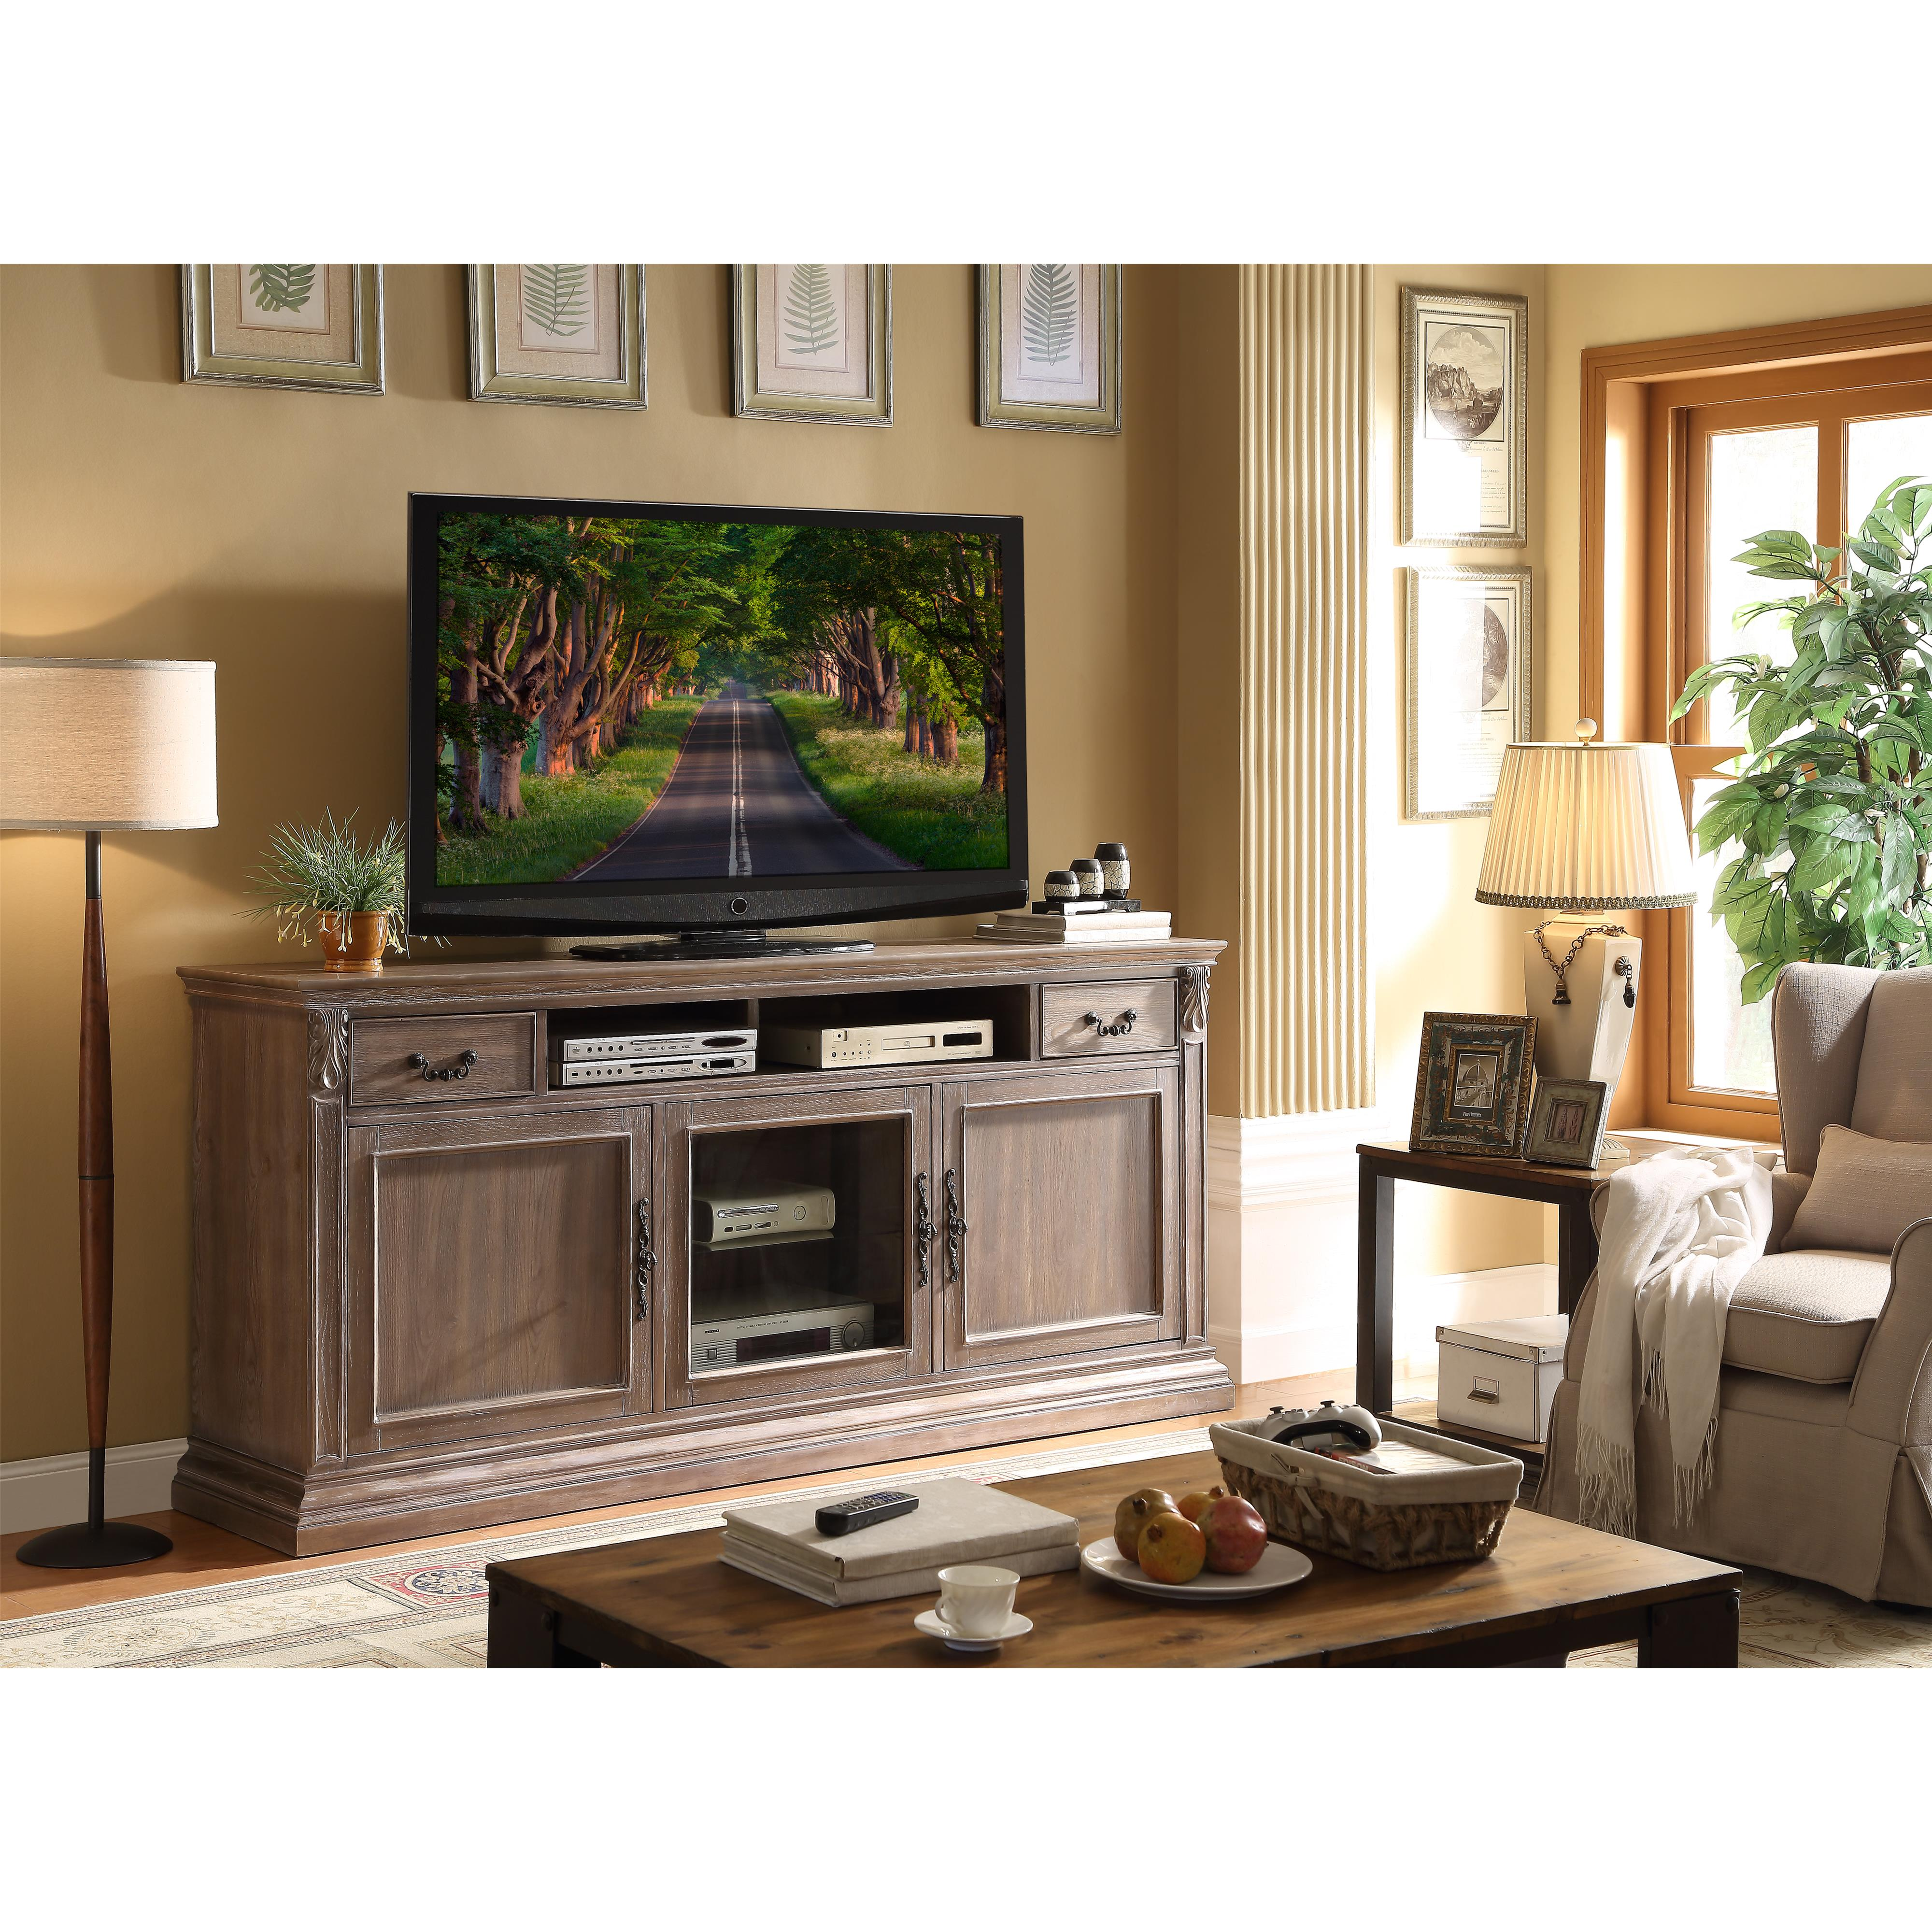 "Legends Furniture Estancia Collection 84"" Premium TV Console - Item Number: ZEST-1786"